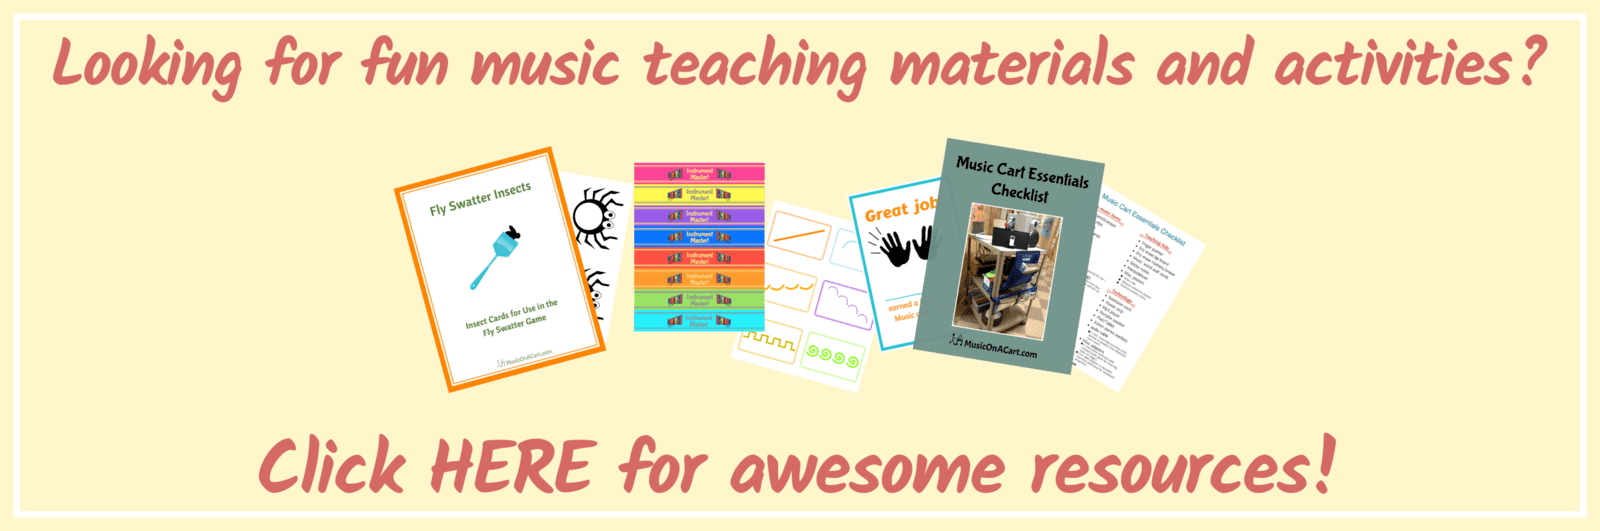 Elementary music resources and teaching inspiration | www.MusicOnACart.com